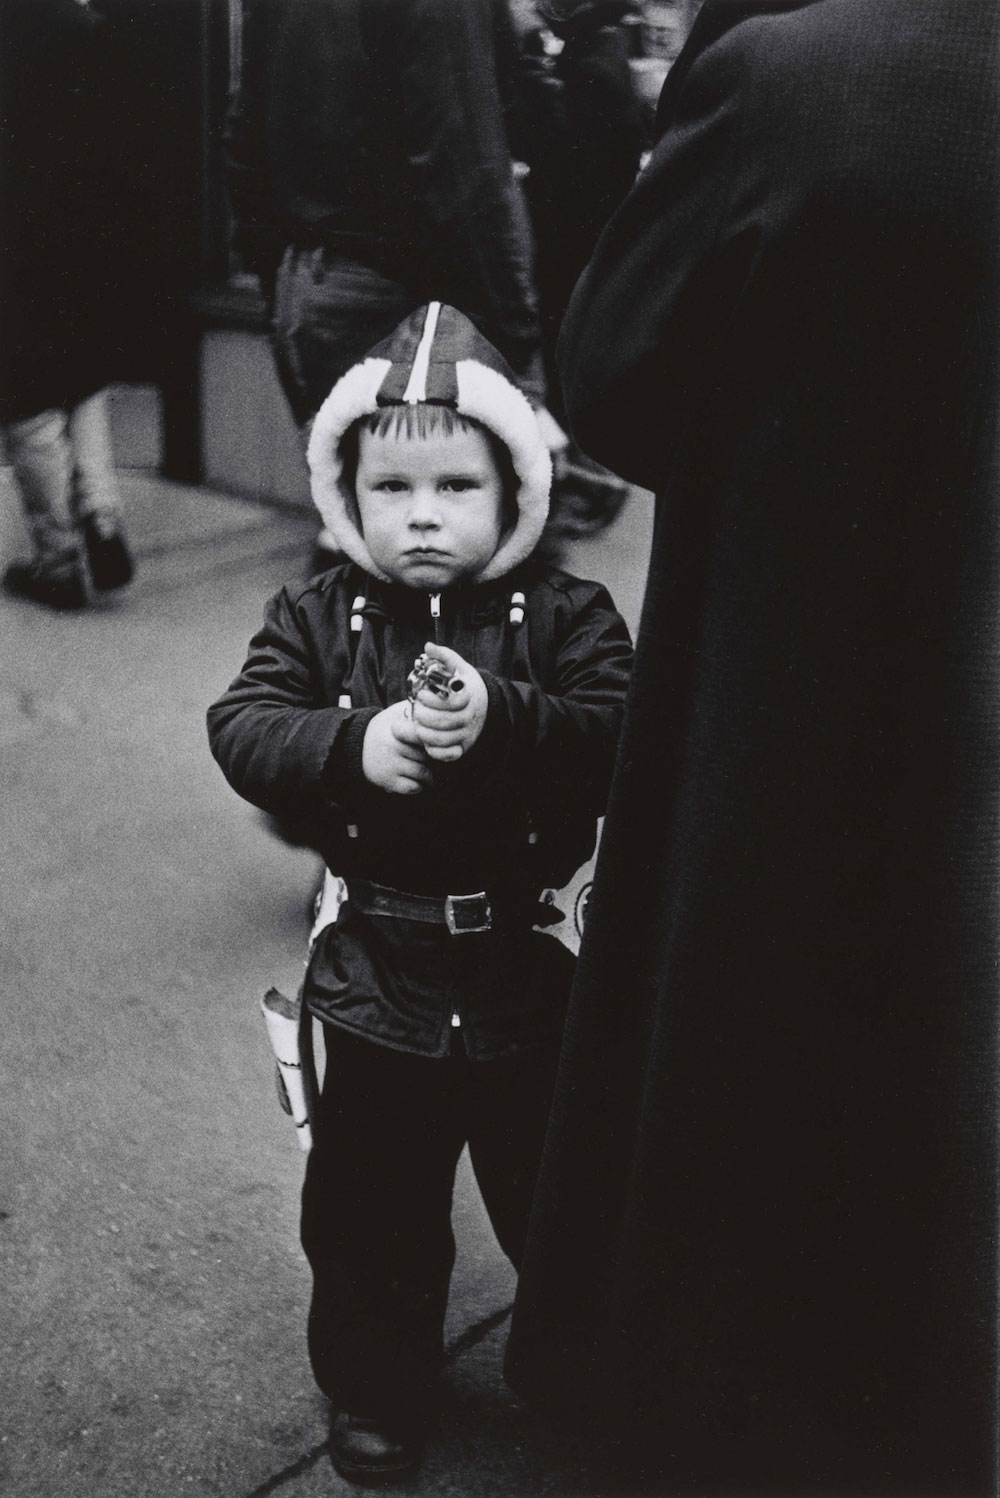 Diane Arbus, Kid in a hooded jacket aiming a gun, N.Y.C.1957